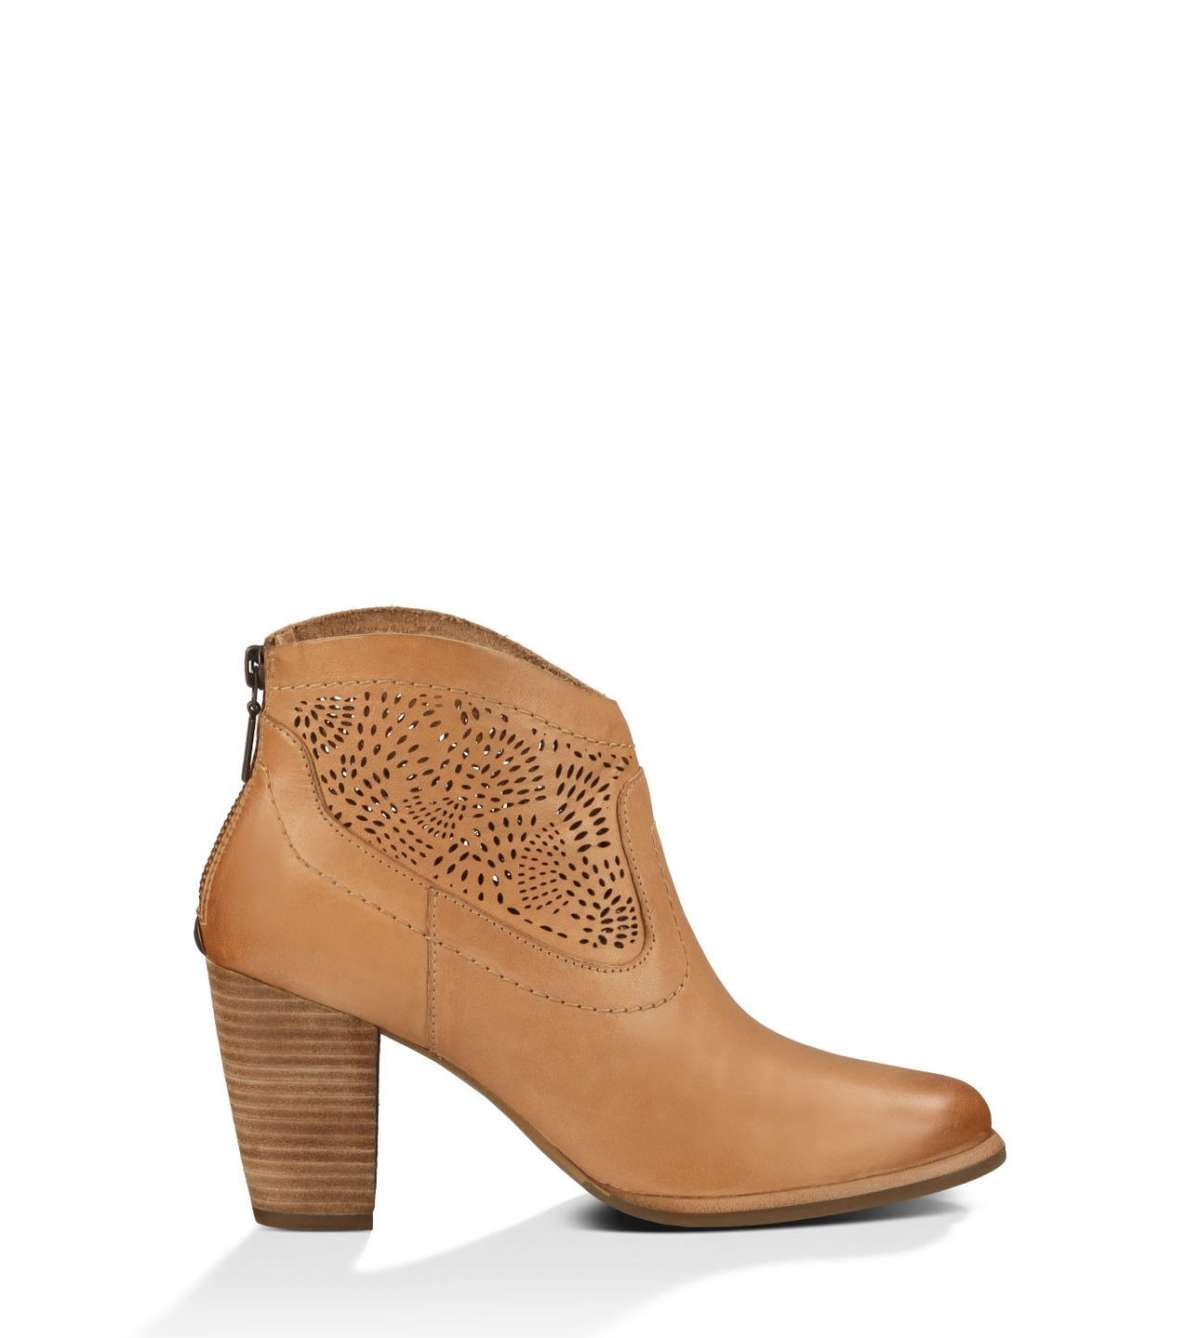 Ankle boot Ugg laser out beige